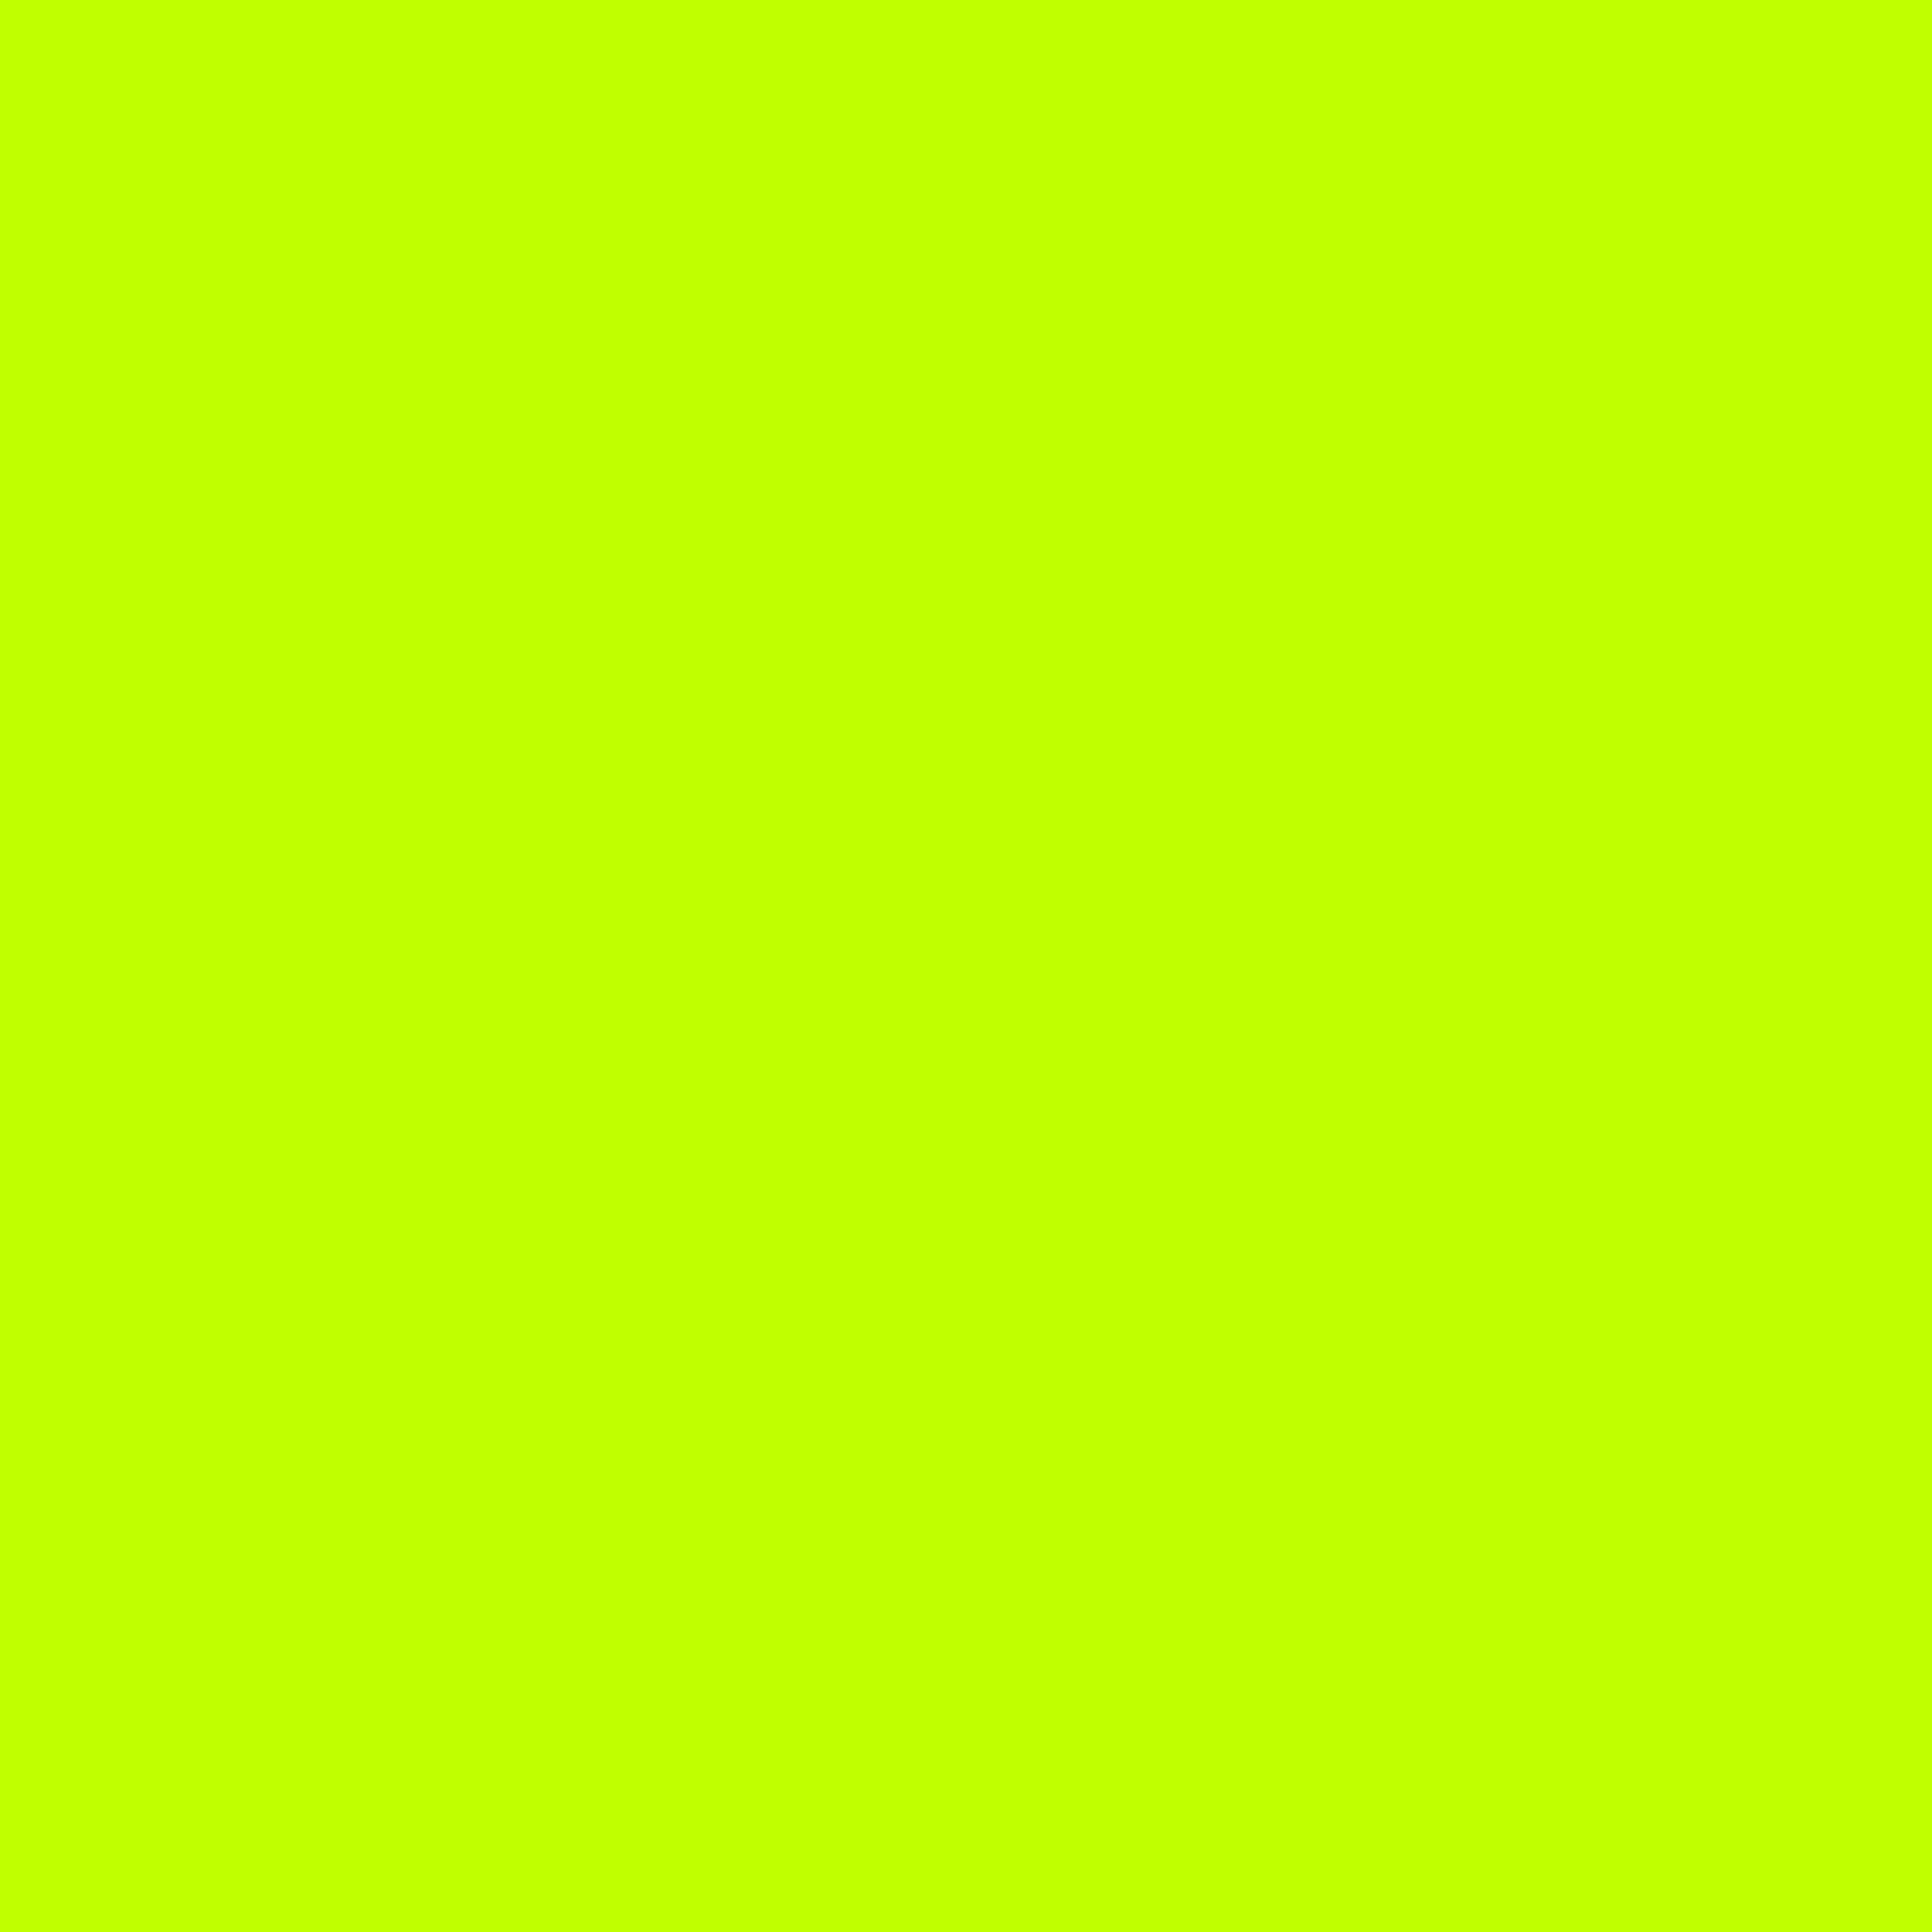 2732x2732 Bitter Lime Solid Color Background